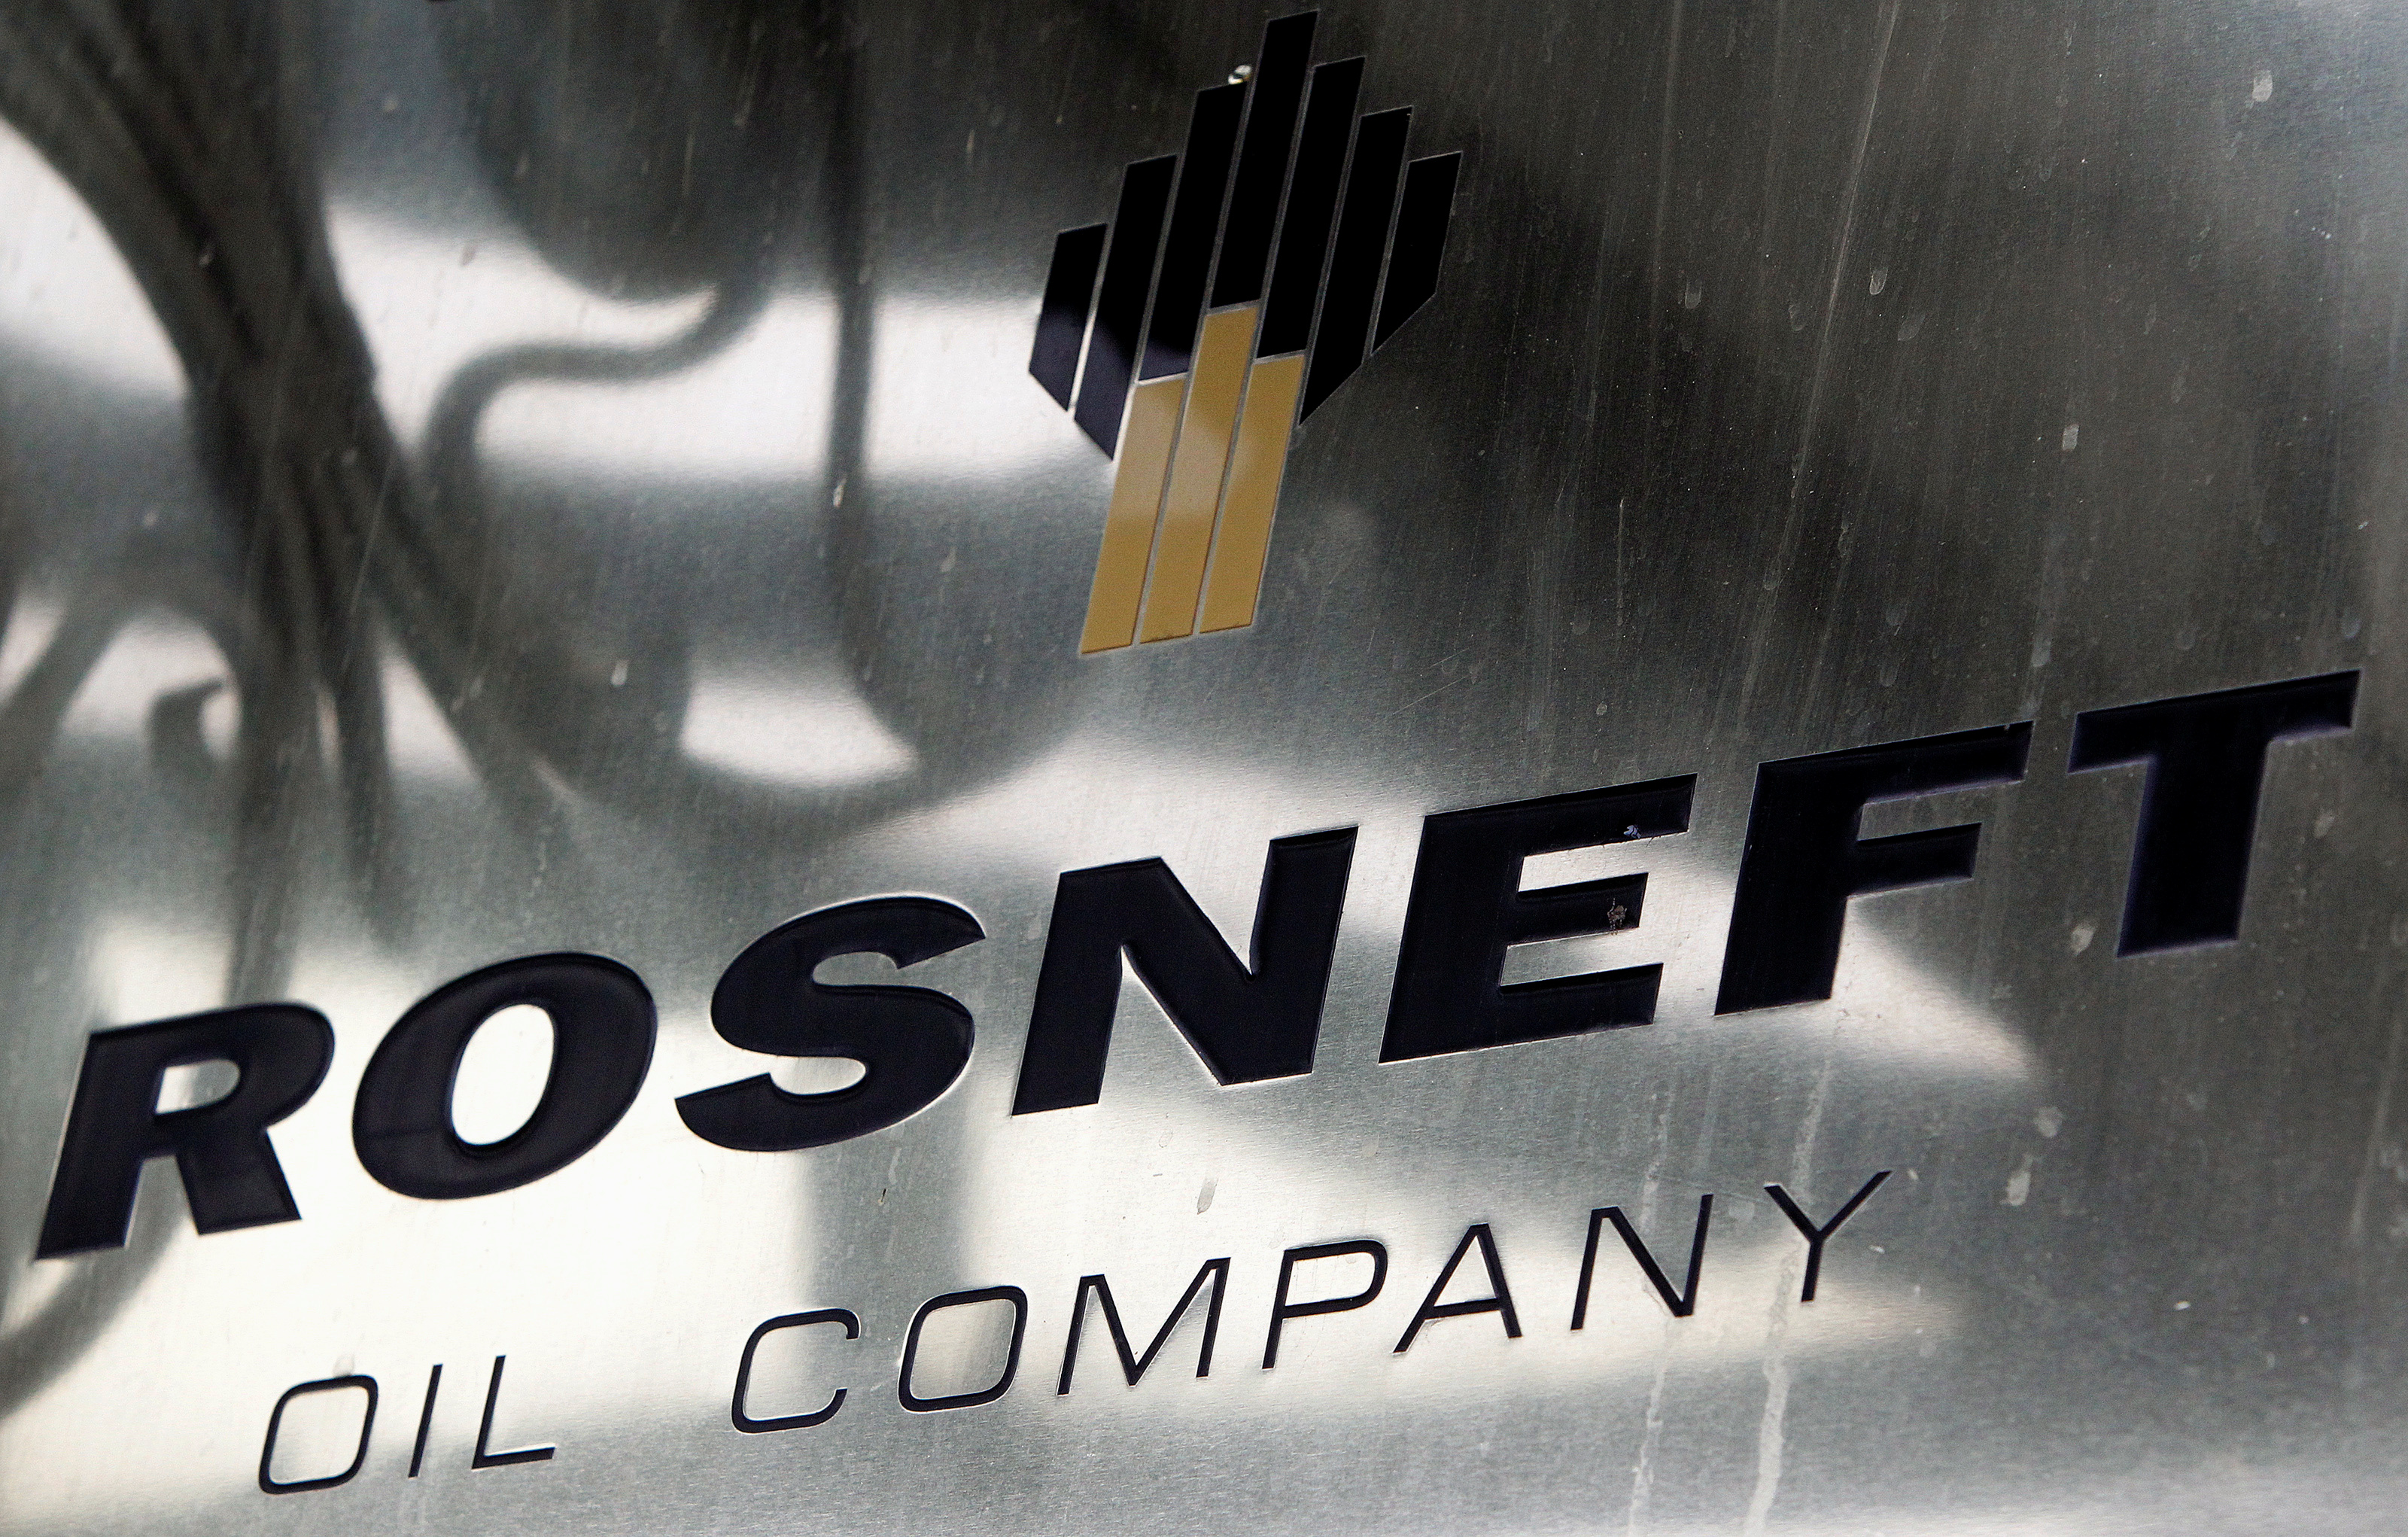 Glencore Terminates Sale Of Rosneft Stake To End Consortium (ALLISS)